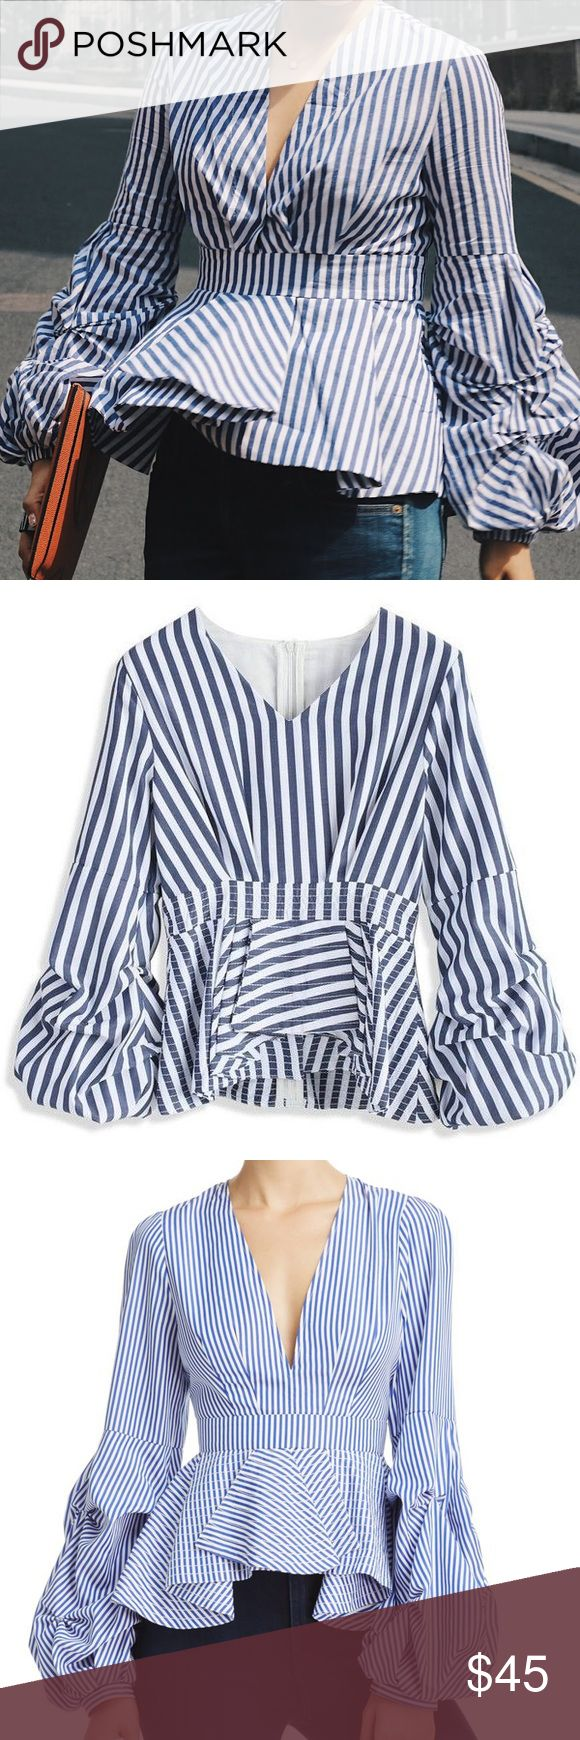 "🆕Peplum Striped Balloon Sleeve Top Color is white based with blue stripes as shown in last photo   Plunging V-neck, banded waist, asymmetric ruffled peplum bottom with back folded details Long sleeves with puckered and draped balloon cuffs Striped poplin fabric, back zip closure, unlined Model measurements: 5'10"" height, 33.5"" bust, 23.5"" waist, 34.5"" hips Polyester Hand wash Imported By Do + Be Bloomingdale's Tops Blouses"